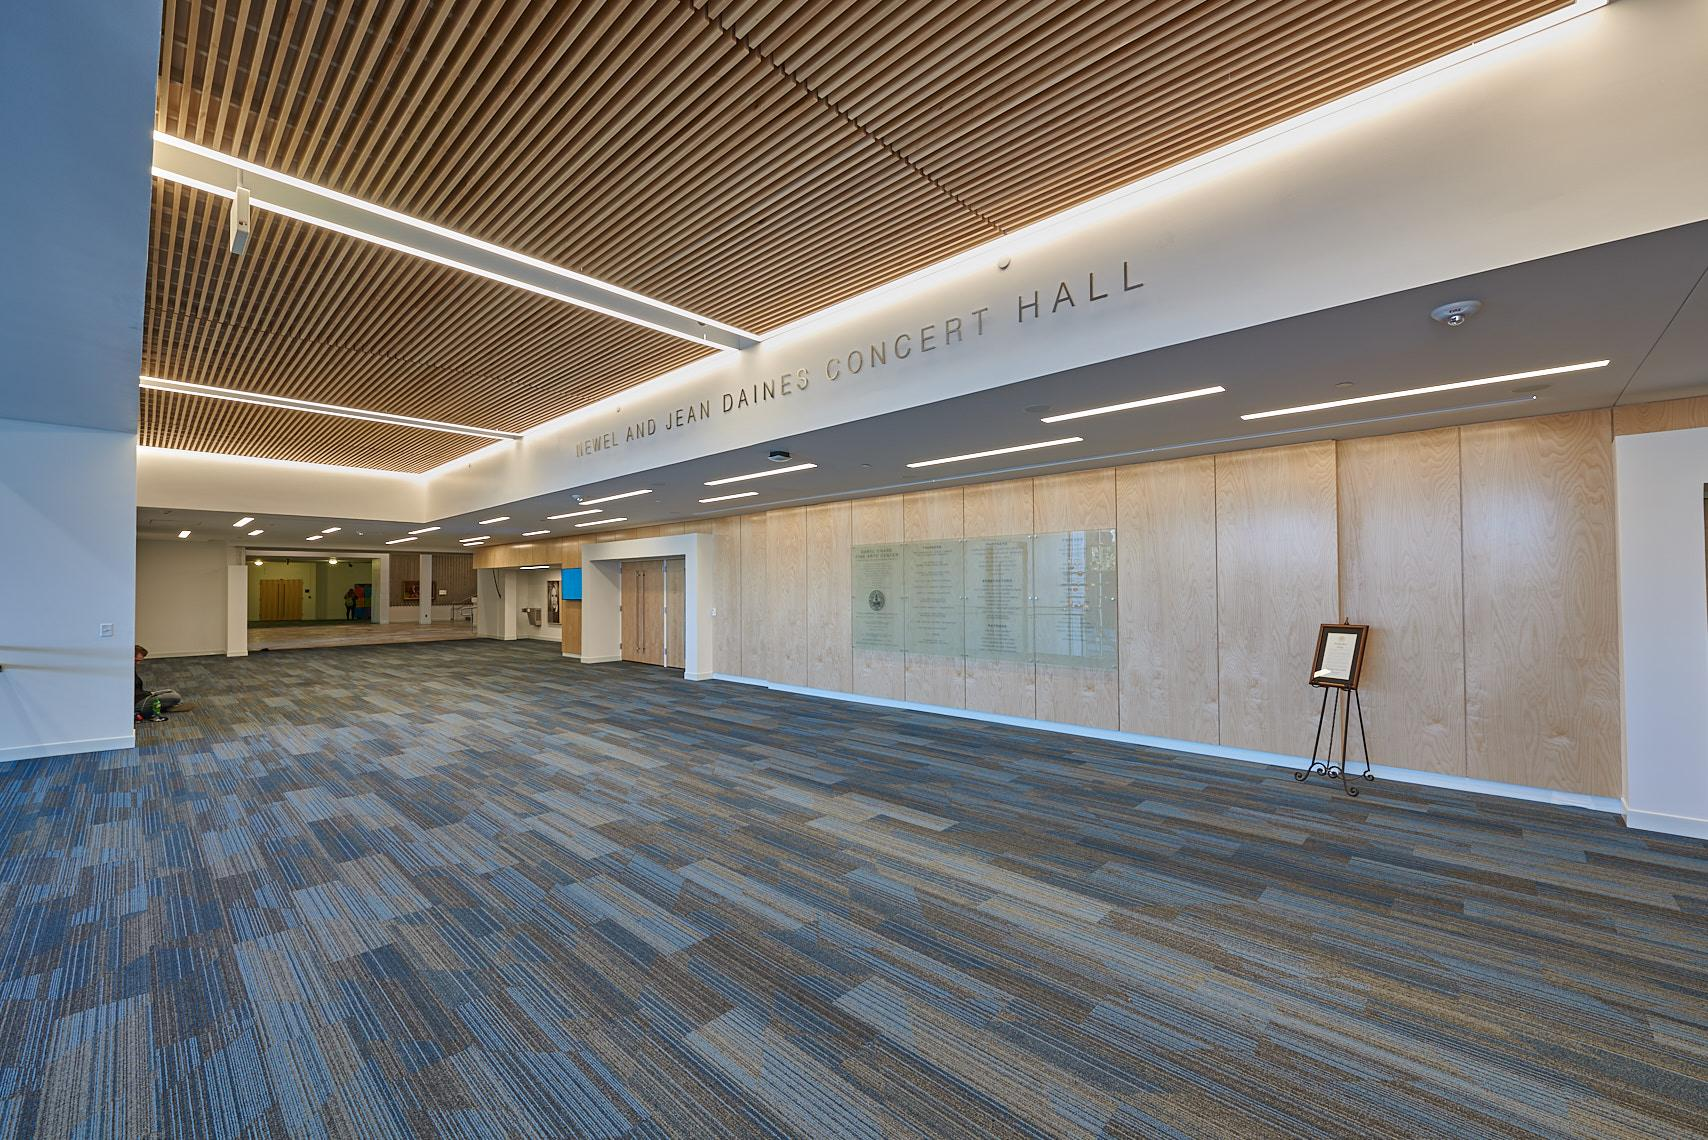 Main entrances to the Daines Concert Hall are located up the stairs from the Hansen Atrium, west of the Rock Lobby.